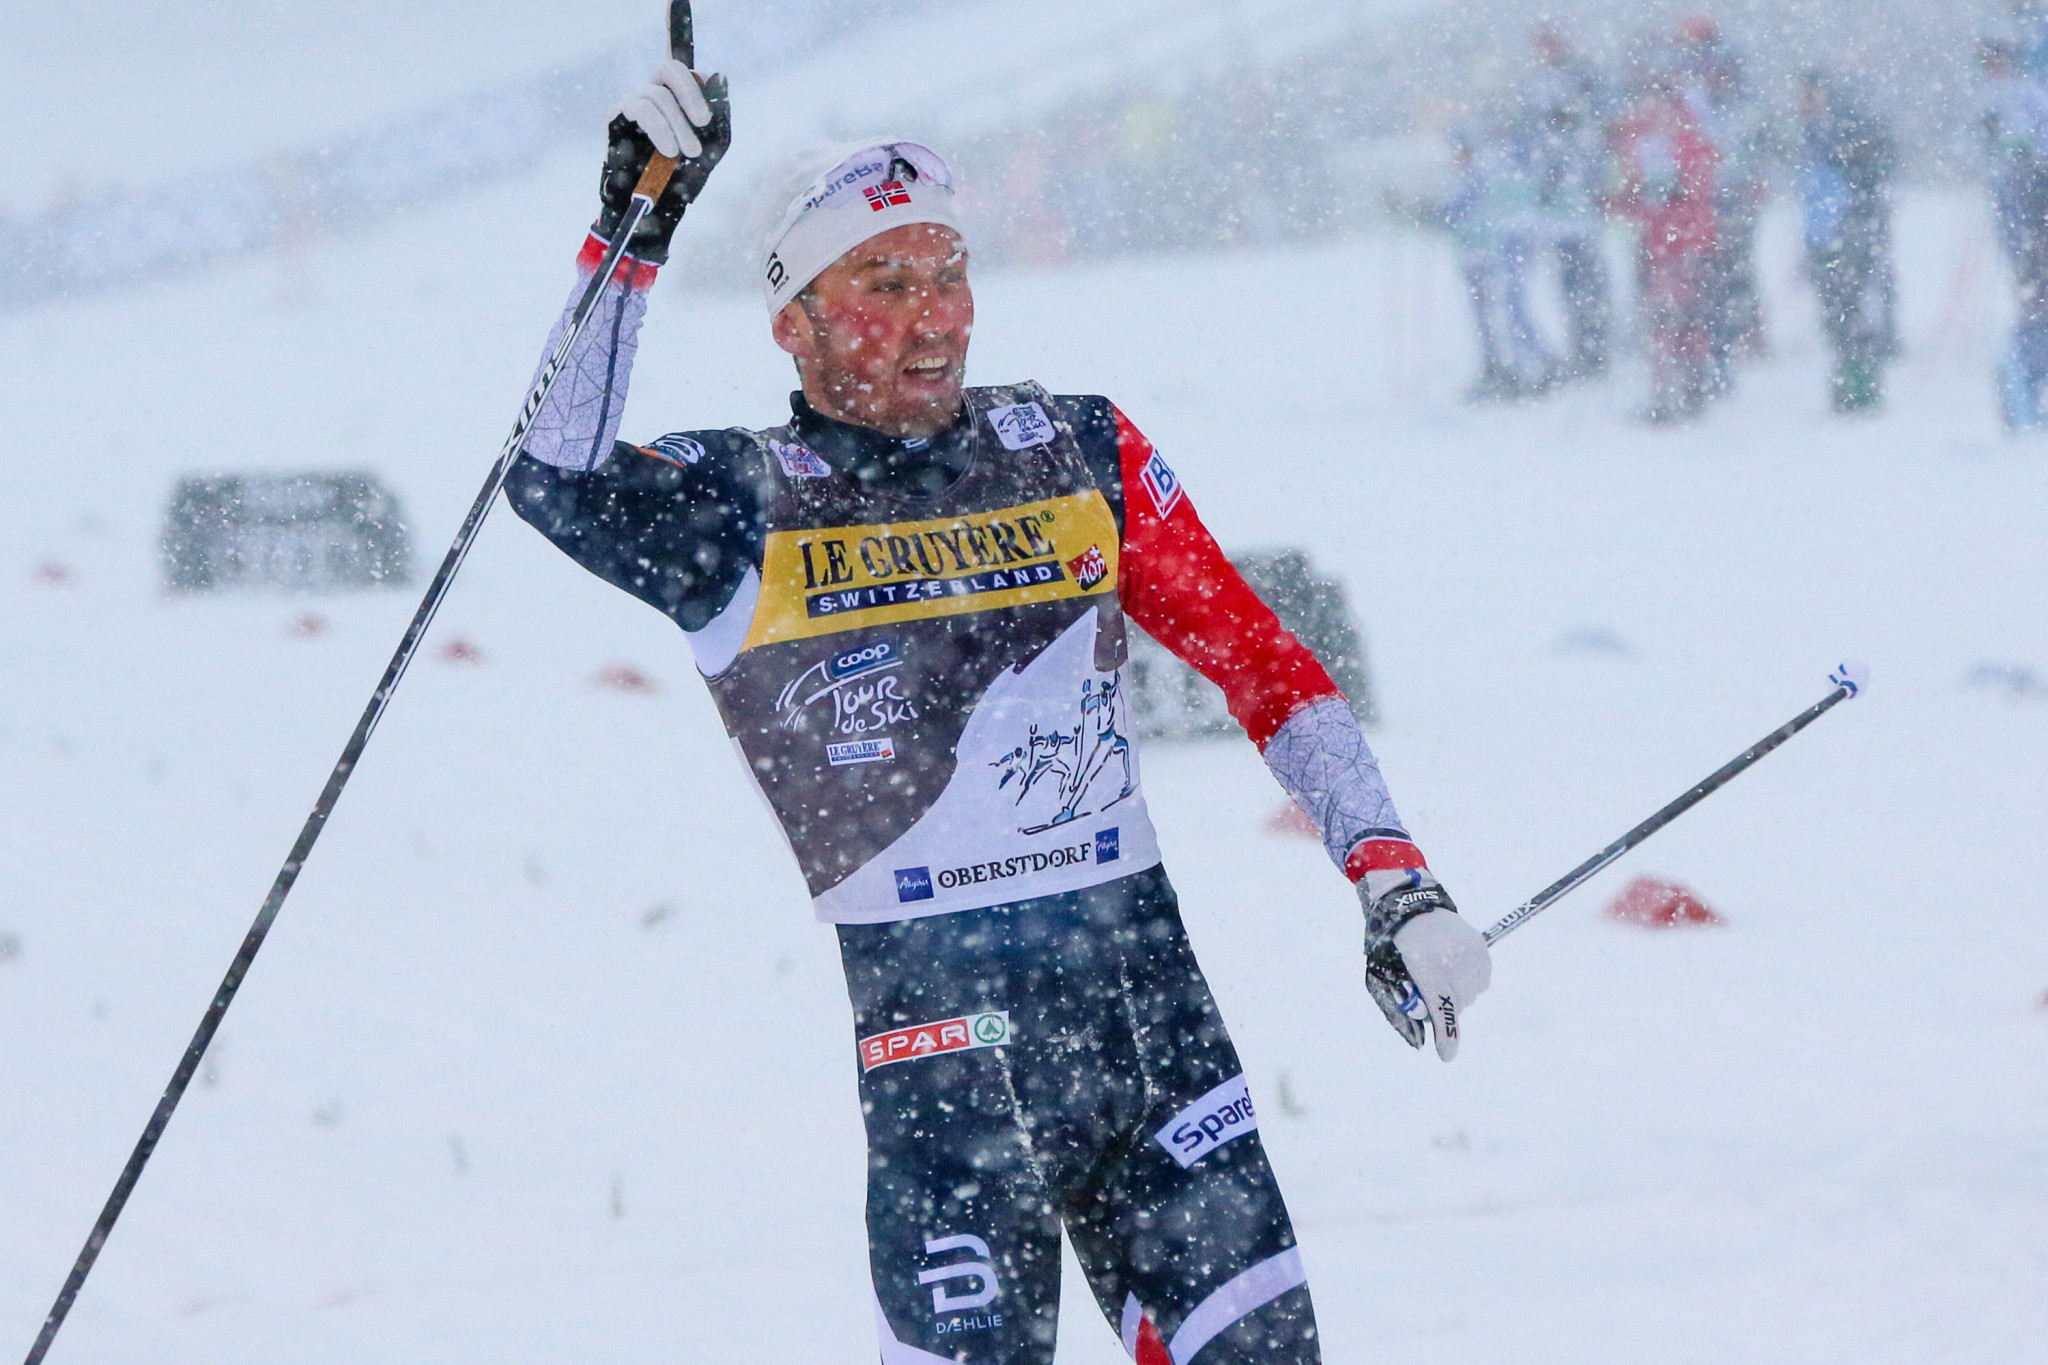 Emil Iversen won today's men's race and now sits third in the overall standings ©Getty Images